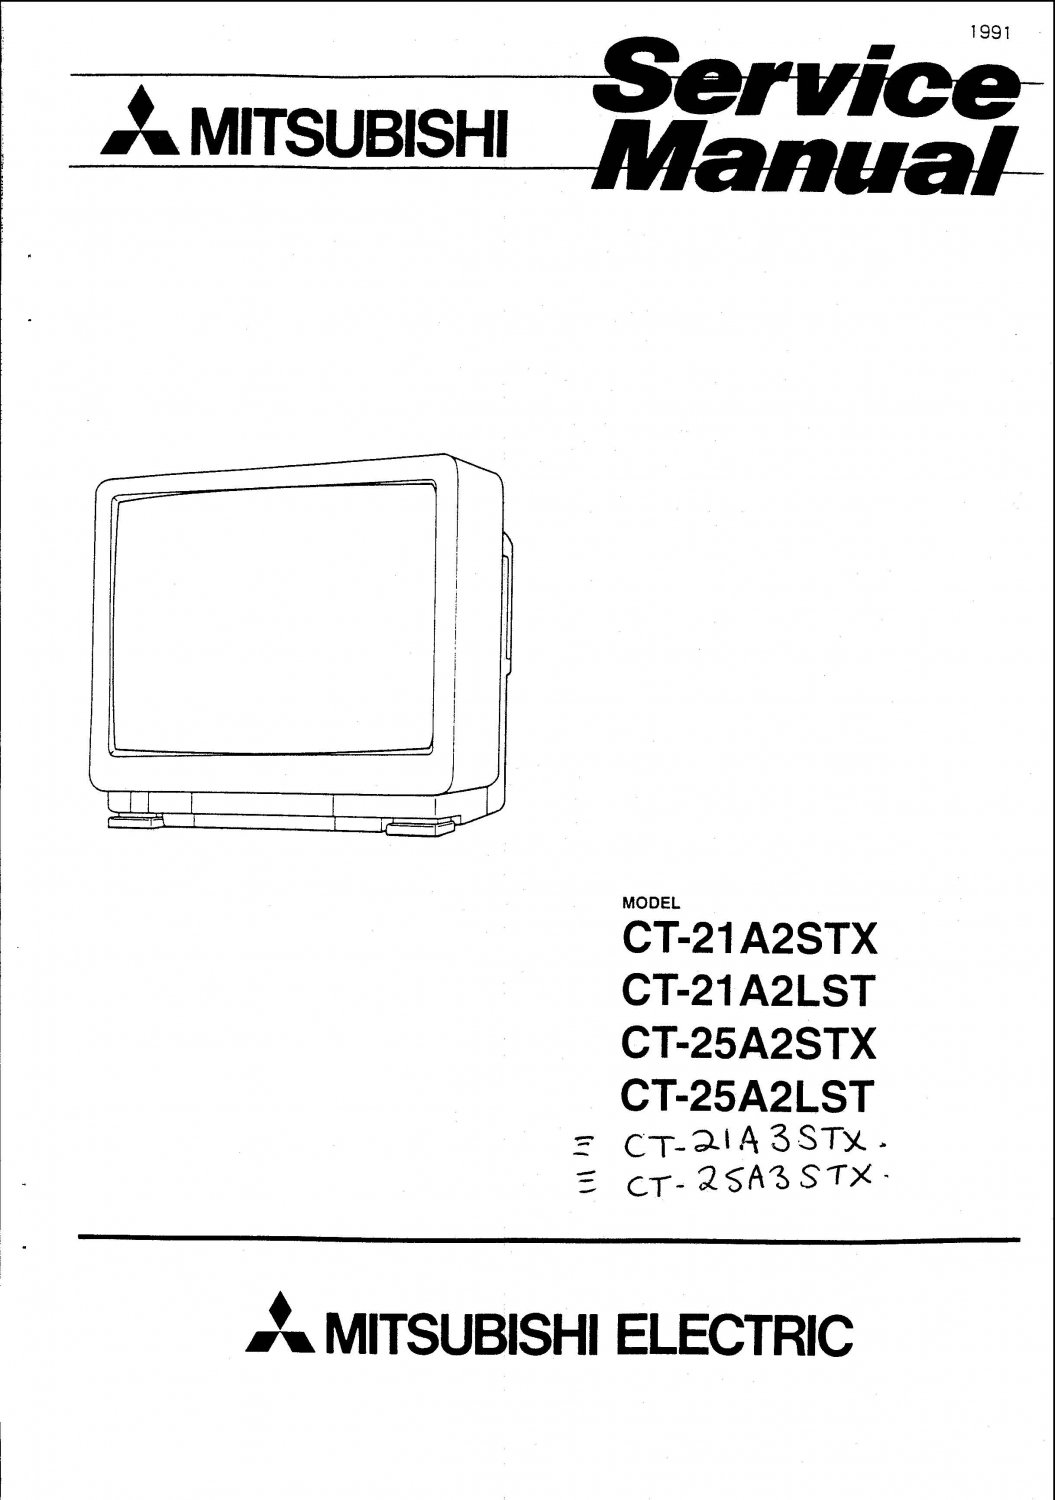 Mitsubishi CT25A3STX Television Service Manual PDF download.